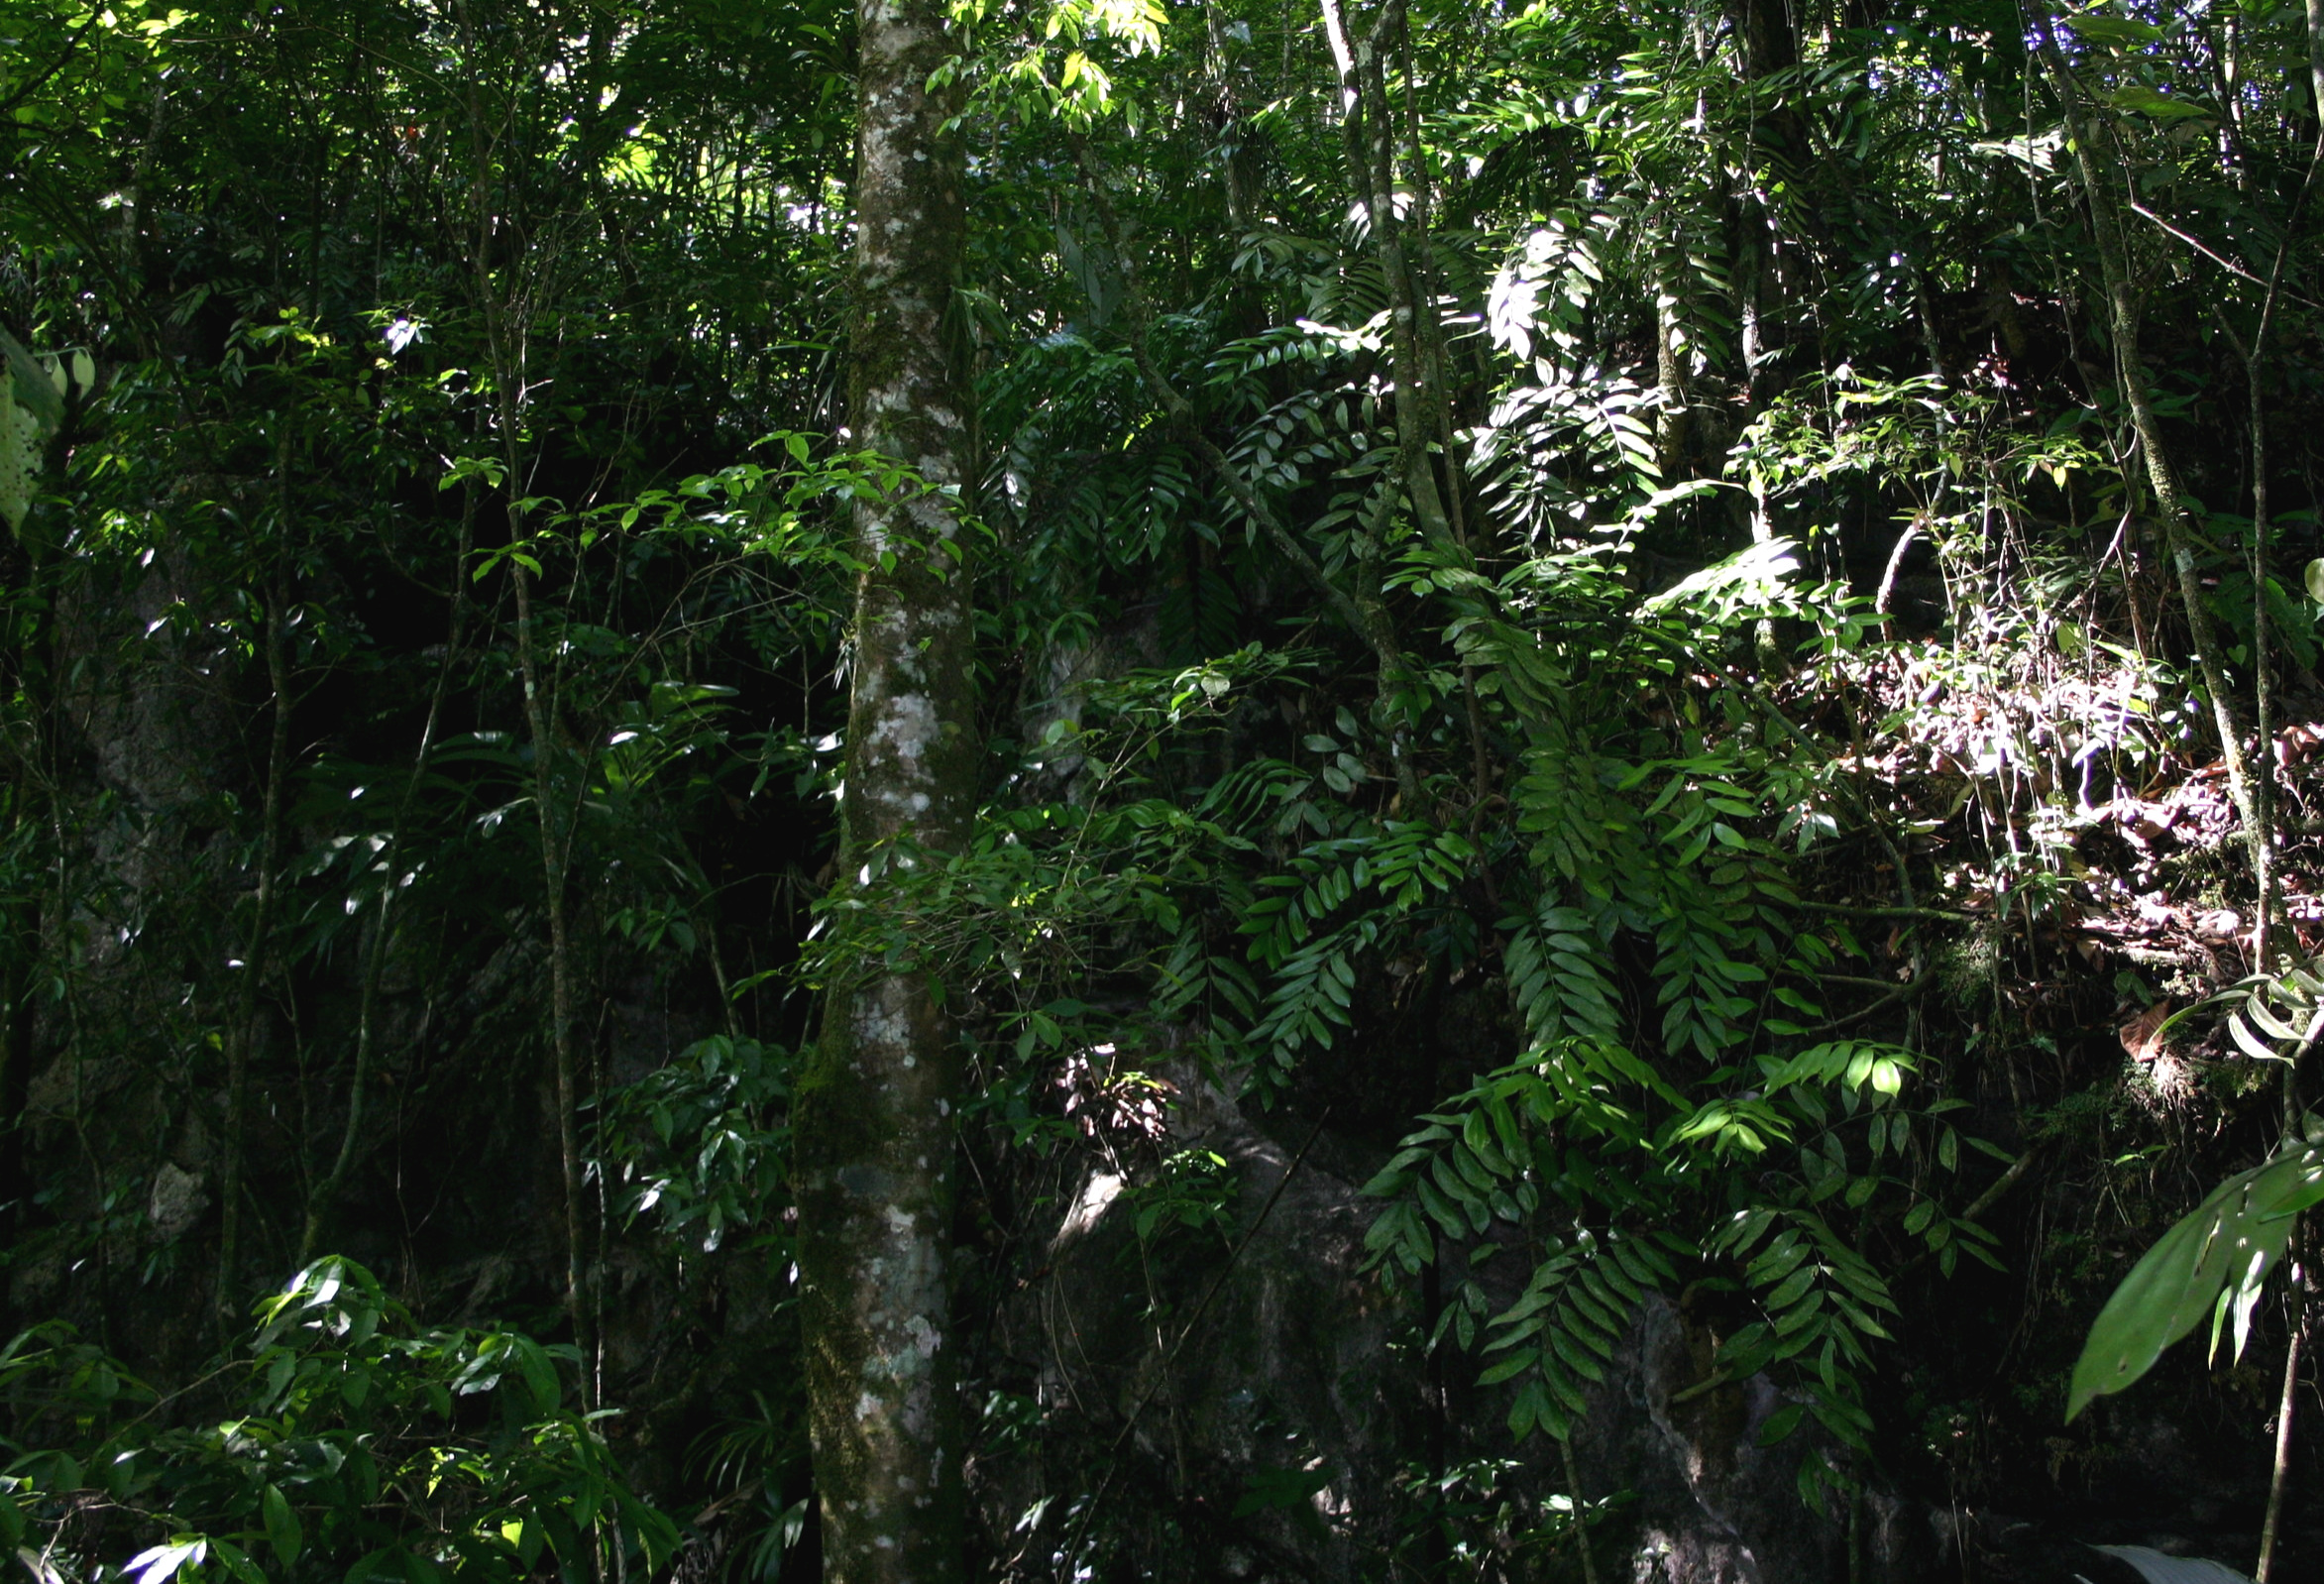 One aspect of a very large population of  Zamia tuerckheimi i near the type locality in central Guatemala. Plants growing along the summit and face of of a forested karst dropoff. Coning-sized plants are visible in the understory from upper left to top and bottom right.